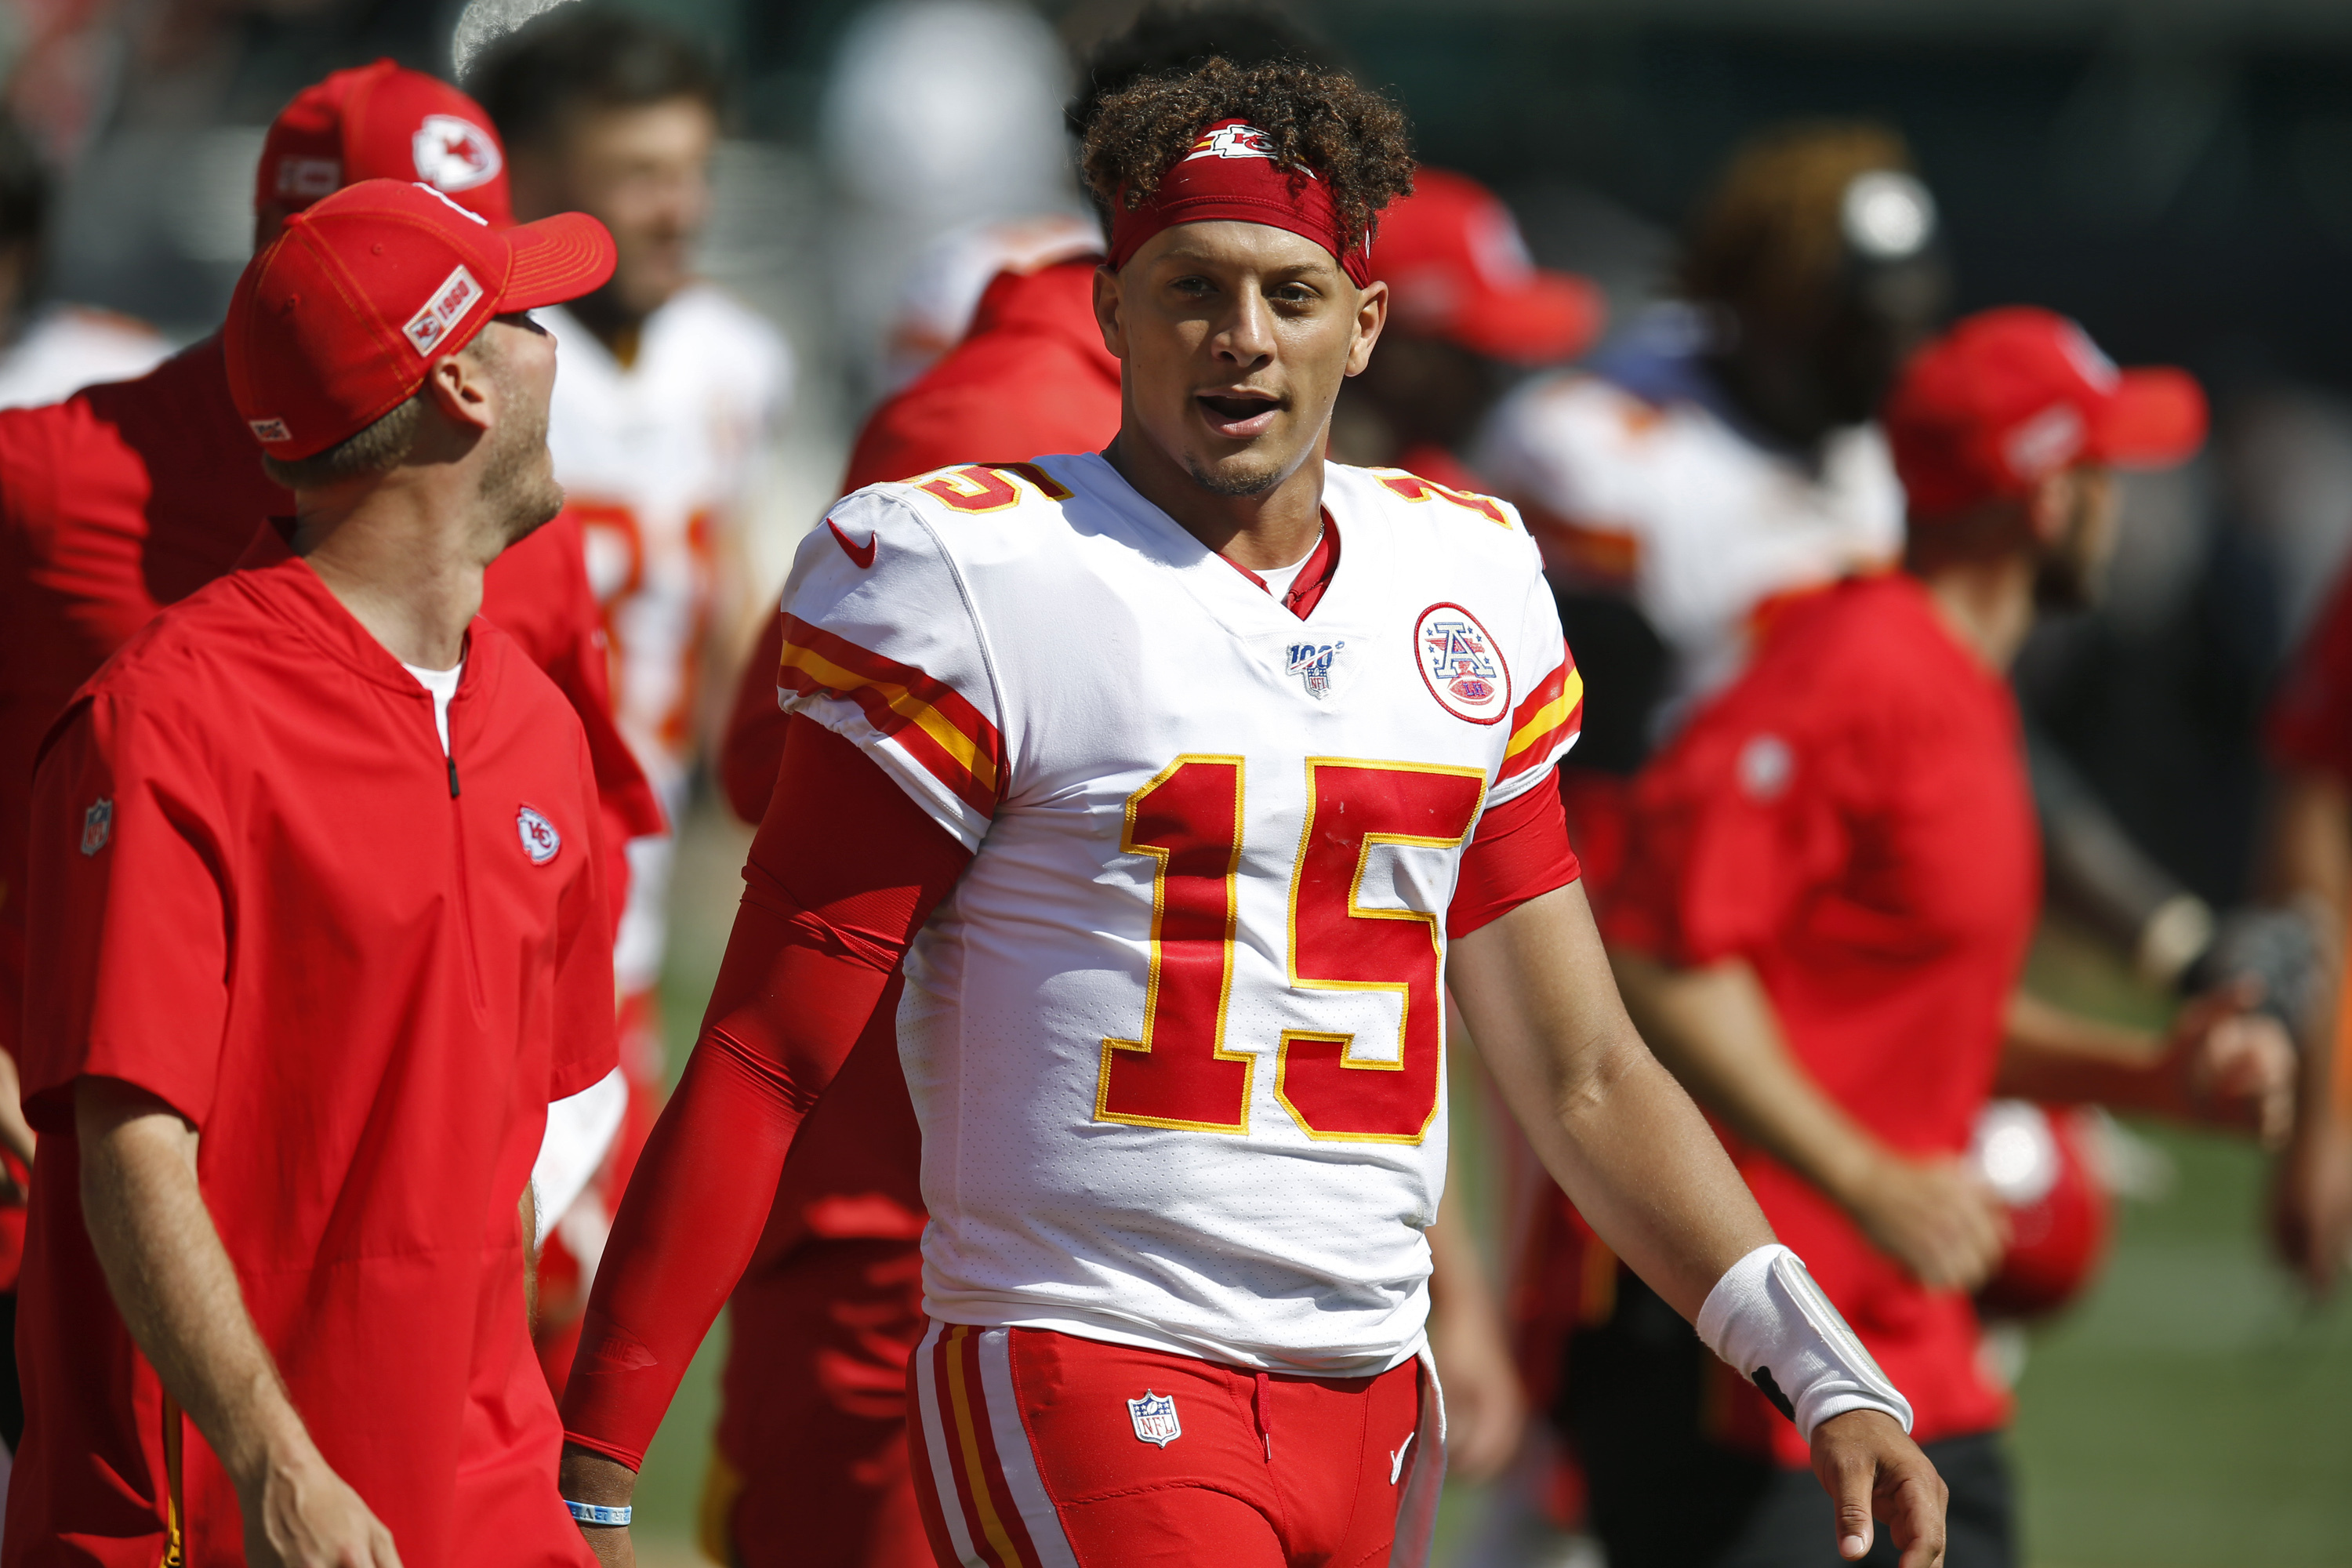 Chiefs left tackle Eric Fisher headed for groin surgery